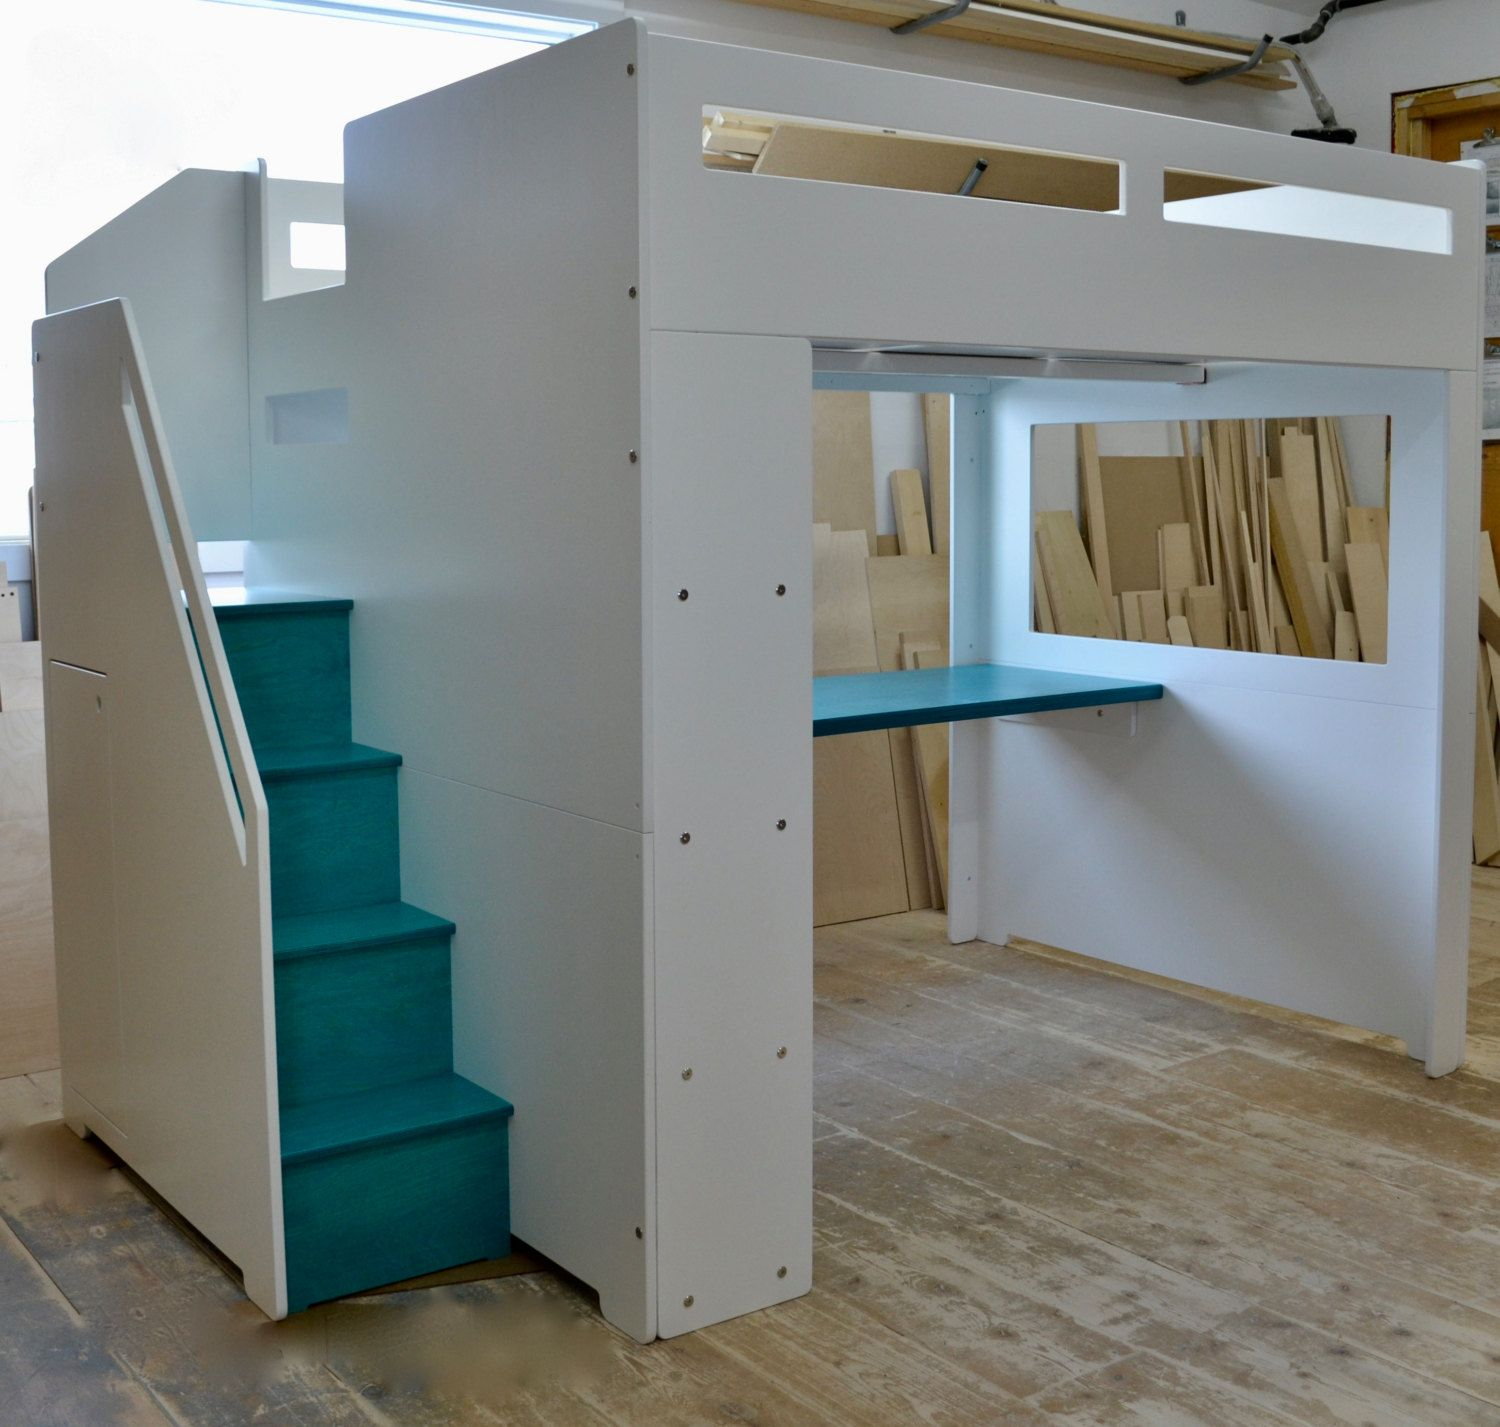 Modern Loft Bed With Storage For Full Size Mattress Modern Loft